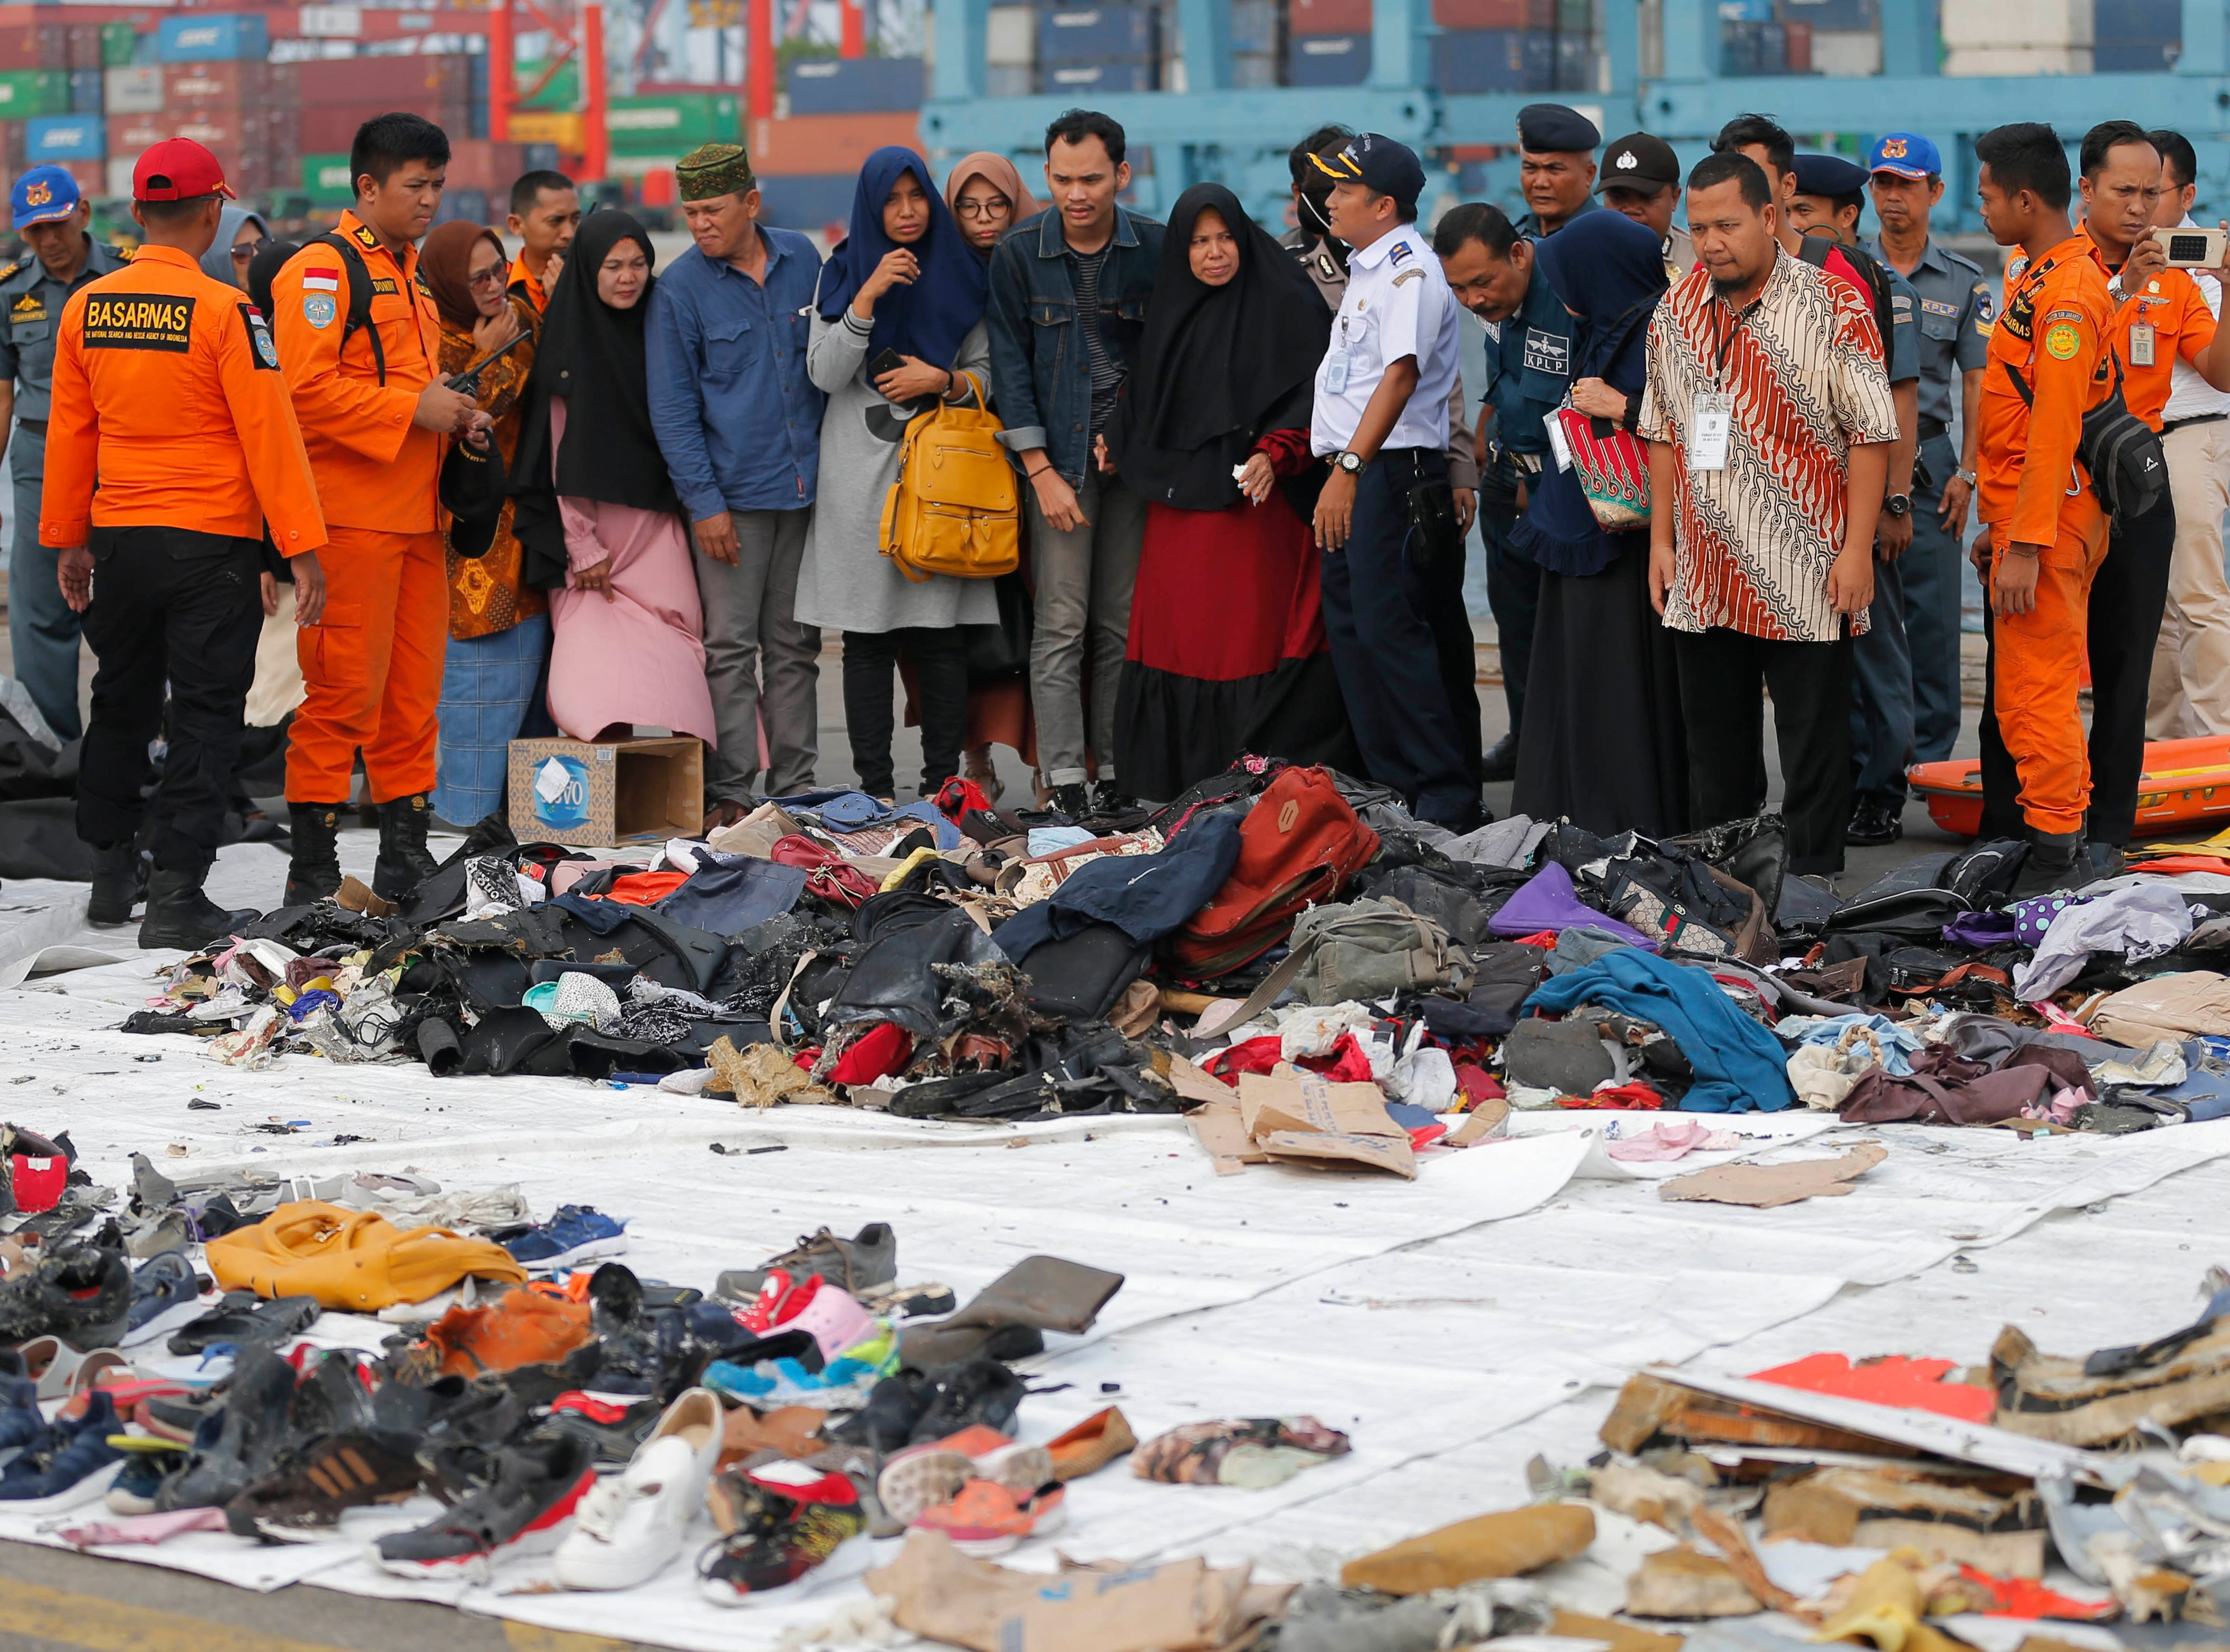 Relatives of passengers on the crashed Lion Air jet check personal belongings retrieved from the waters where the airplane is believed to have crashed, at Tanjung Priok Port in Jakarta, Indonesia, on Oct. 31, 2018.